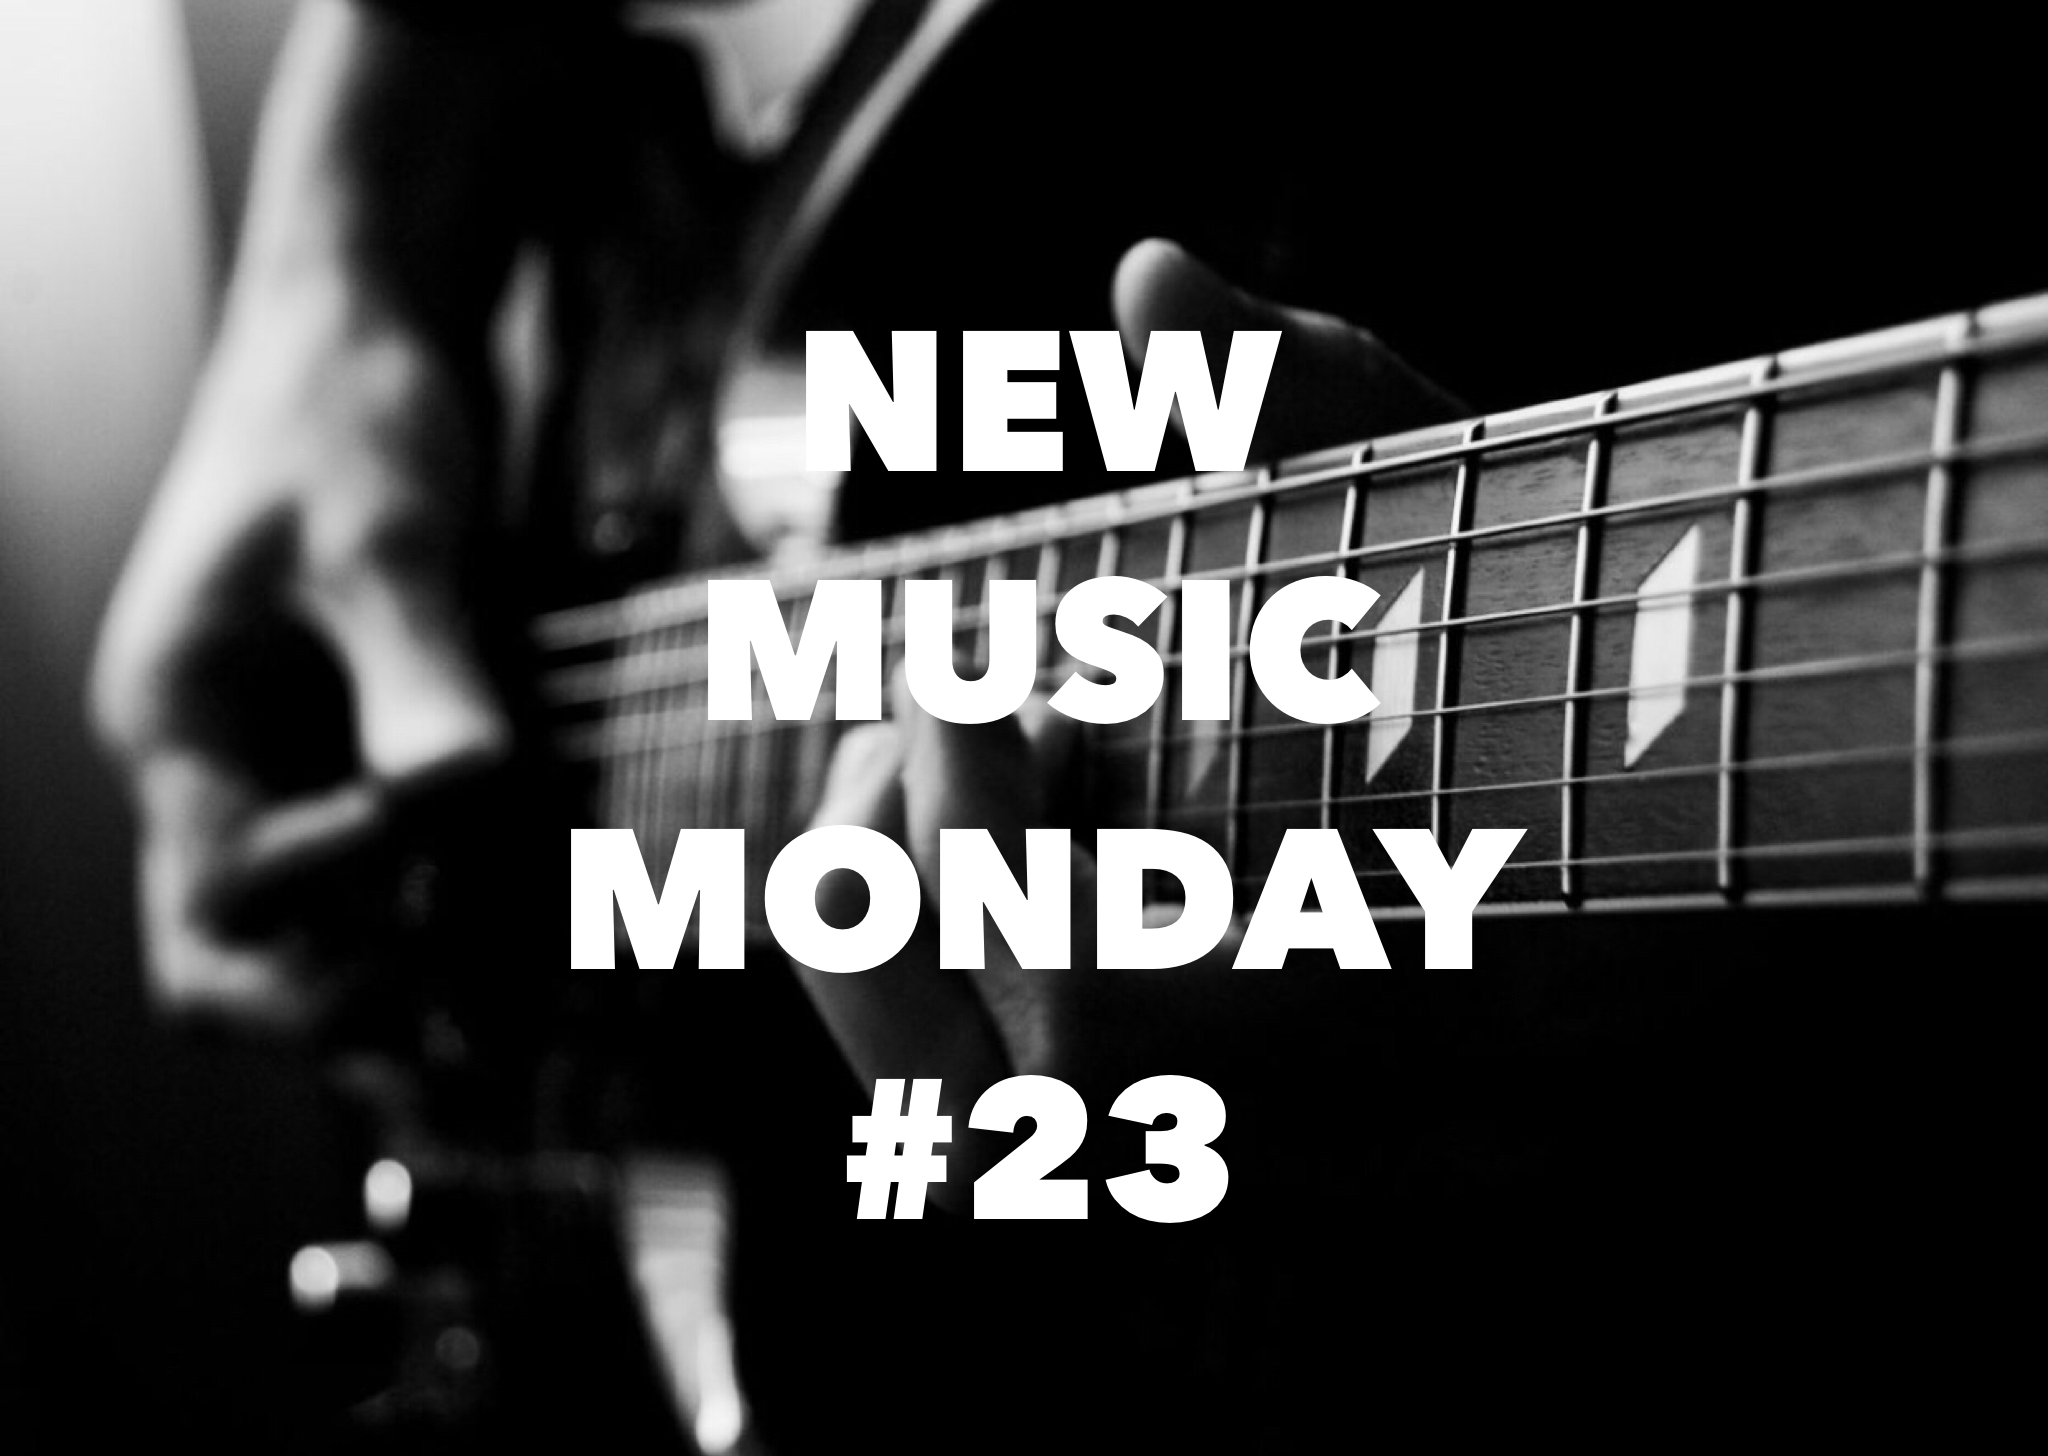 NEW MUSIC MONDAY #23: CRAZY FOR COVERS